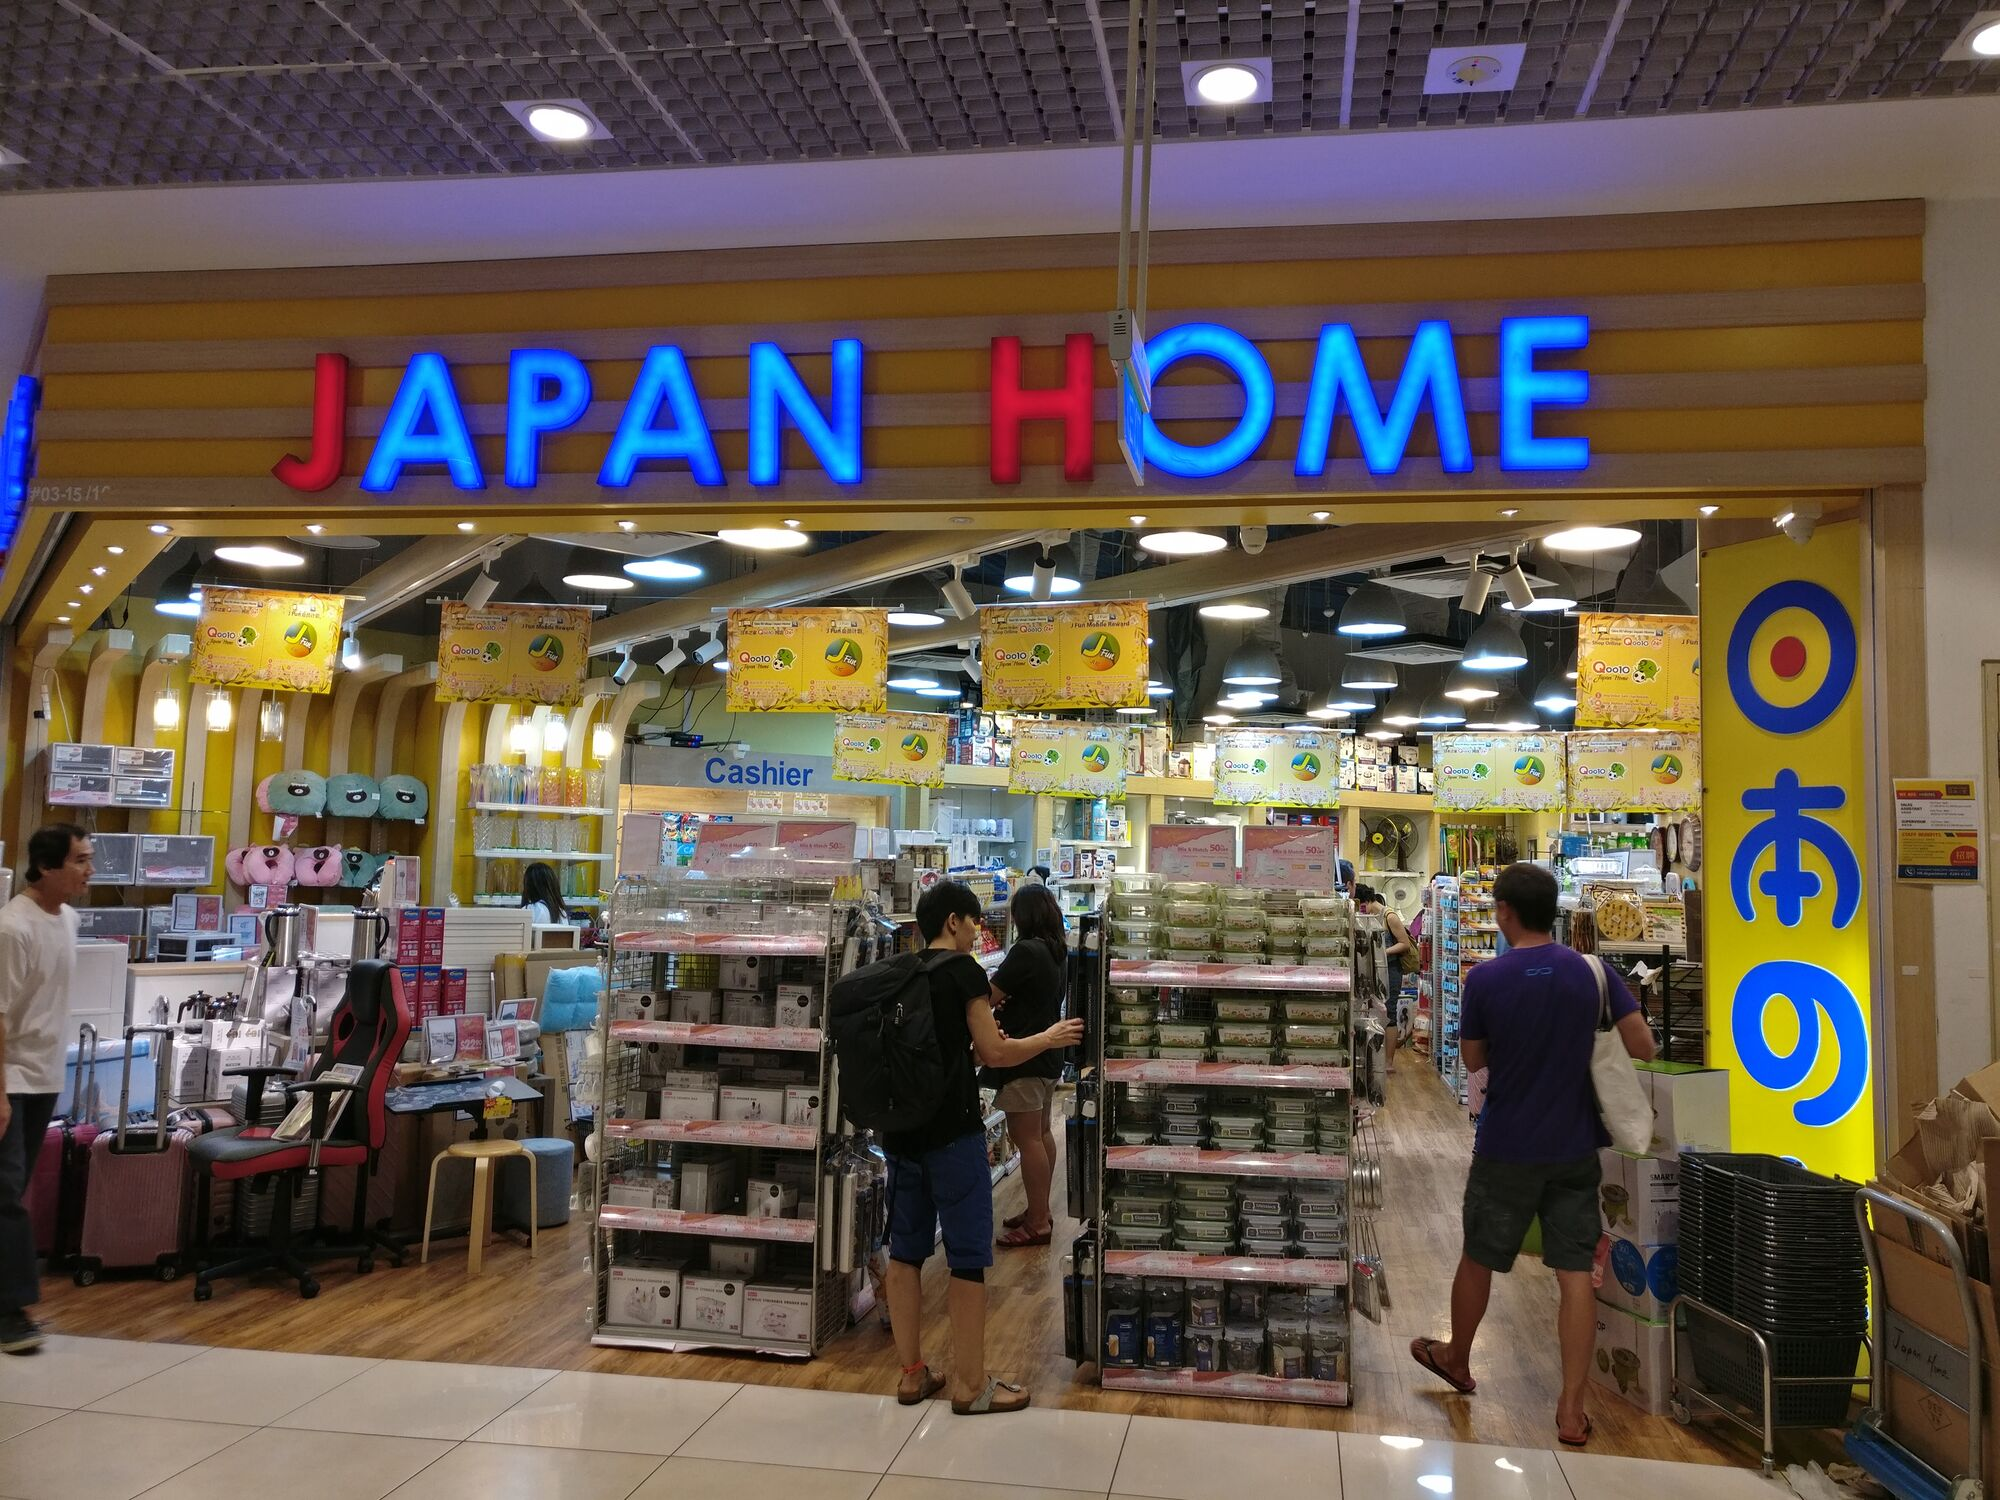 Japan Home shop at the City Square Mall, Singapore